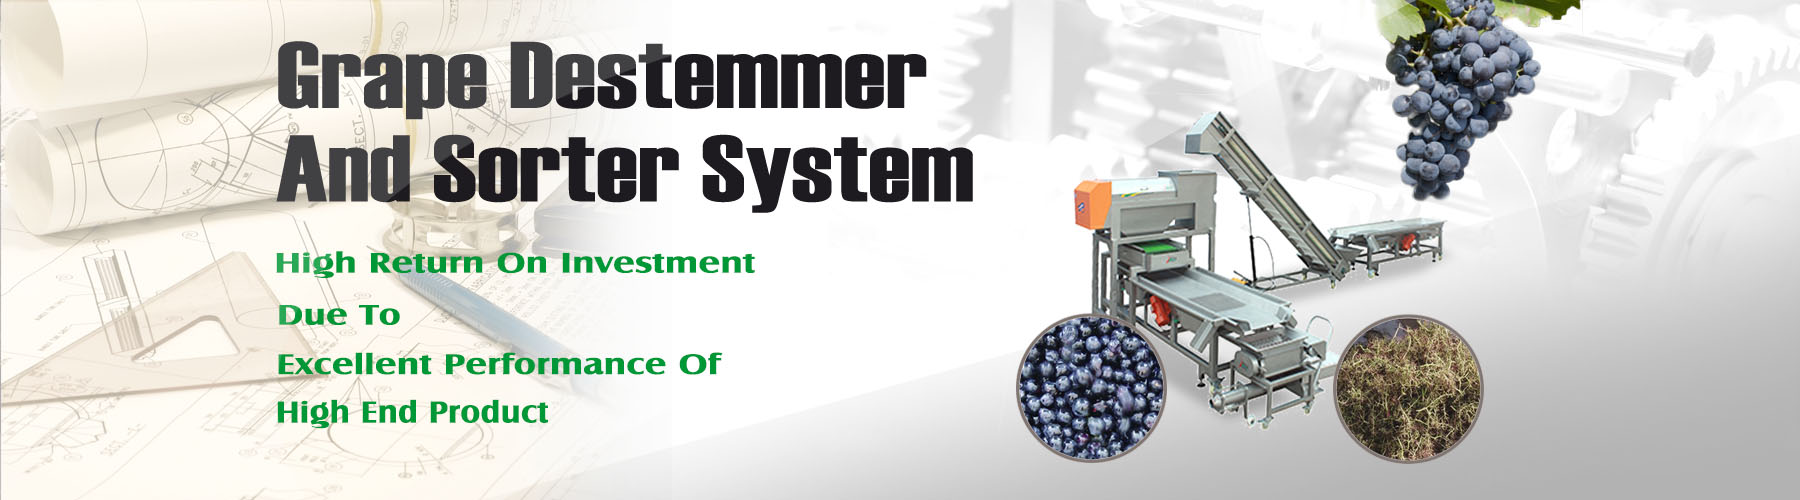 Grape Destemmer And Sorter System--001